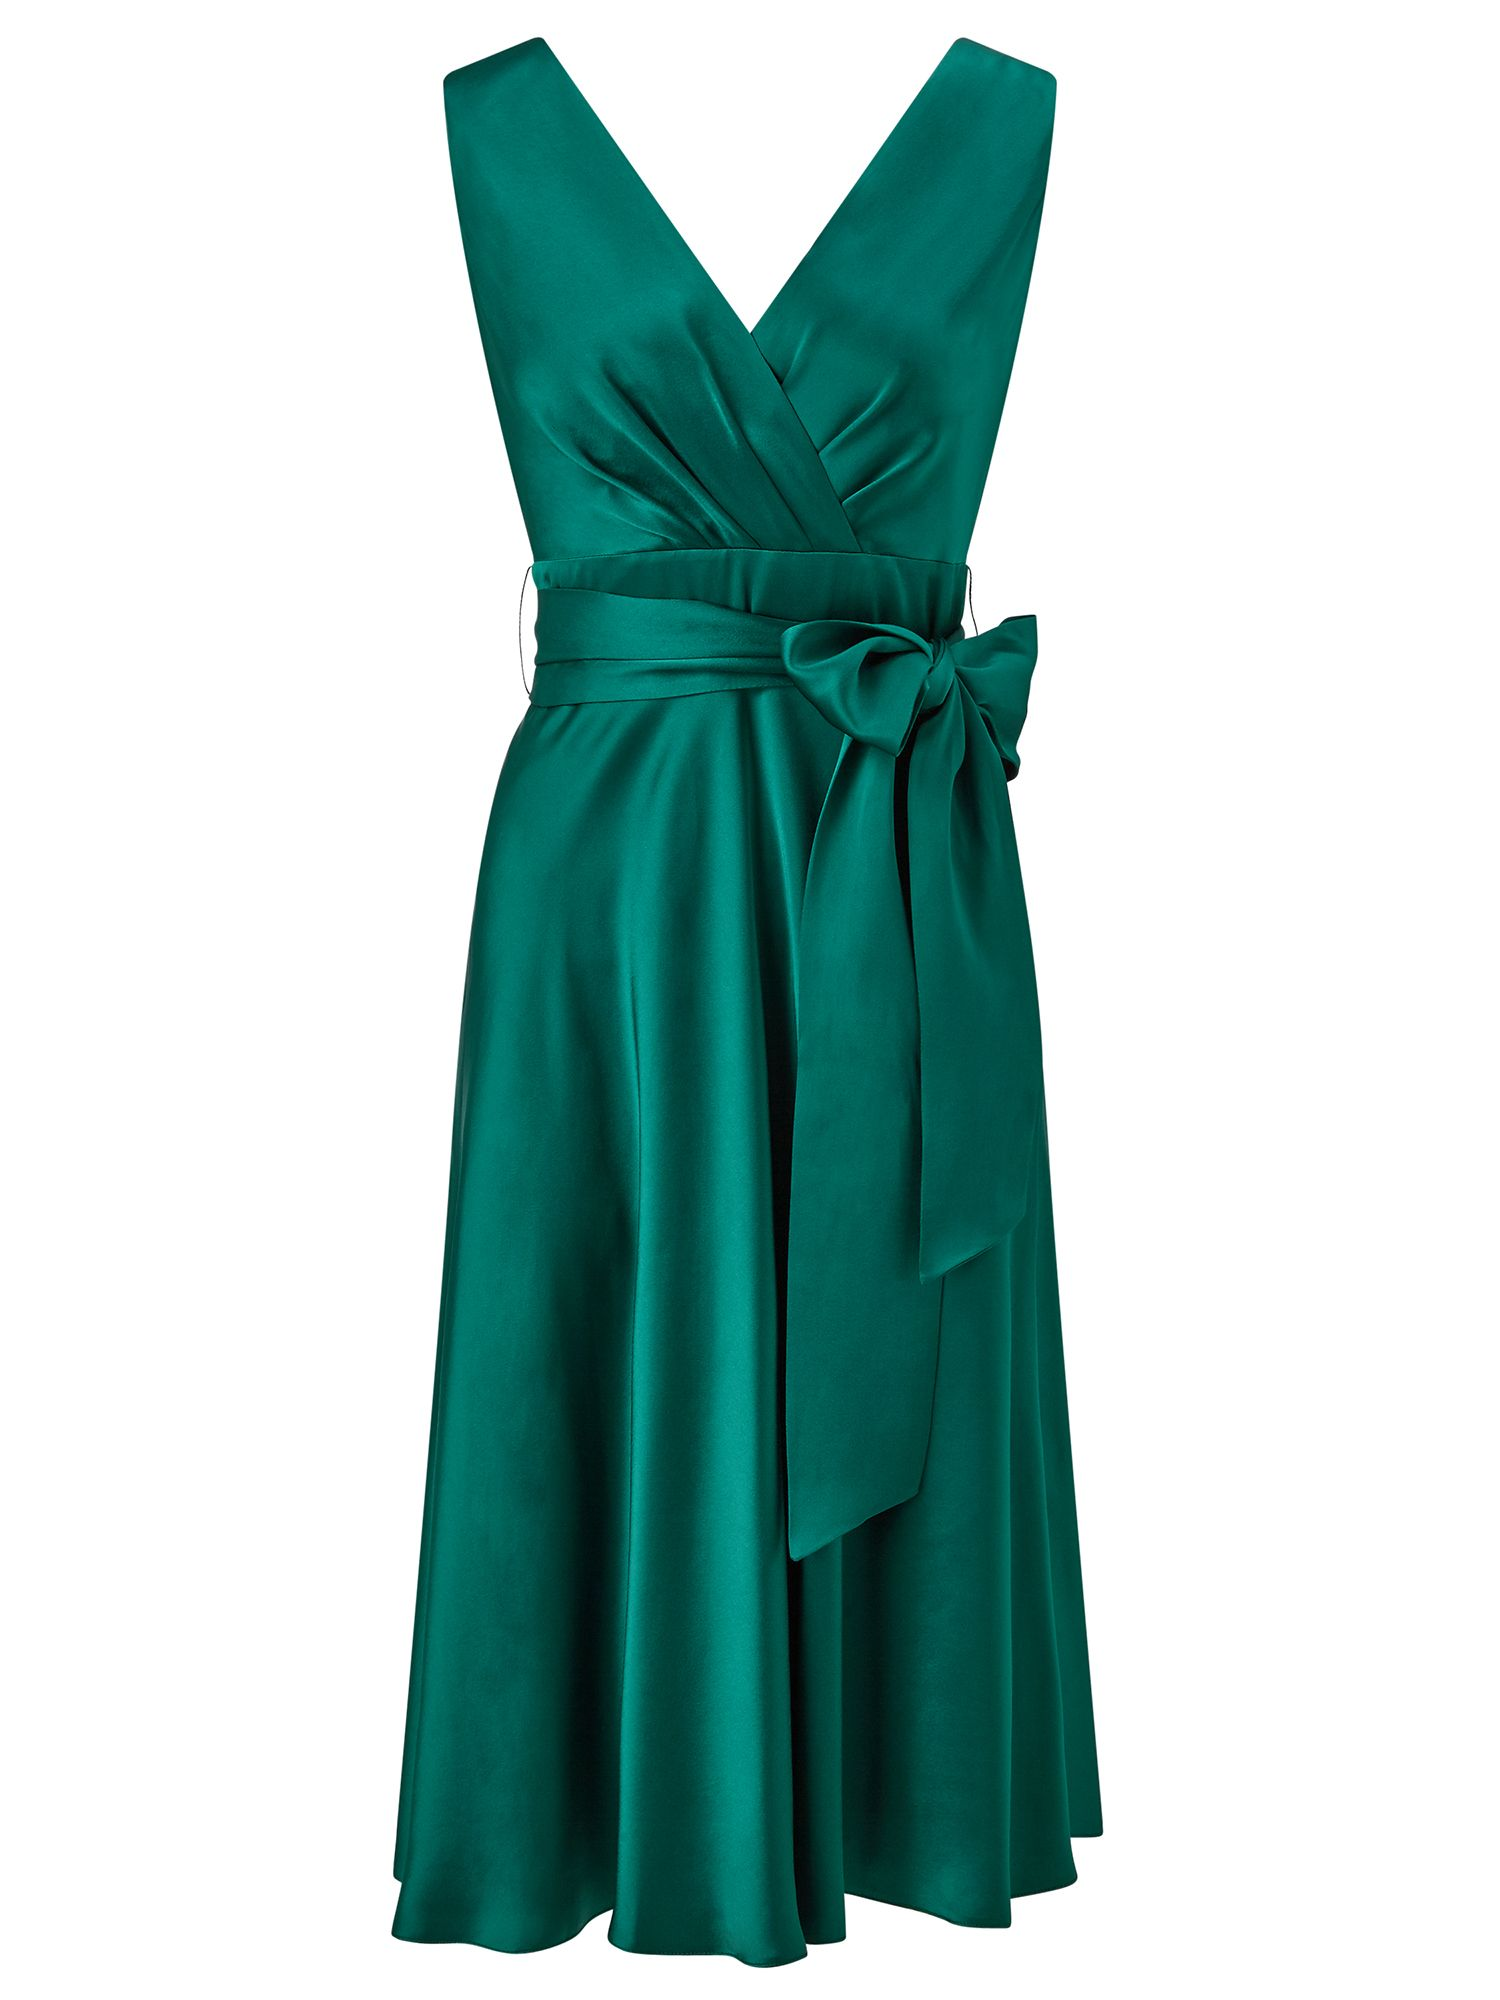 Ariella Belladonna Satin Fit and Flare Dress, Green